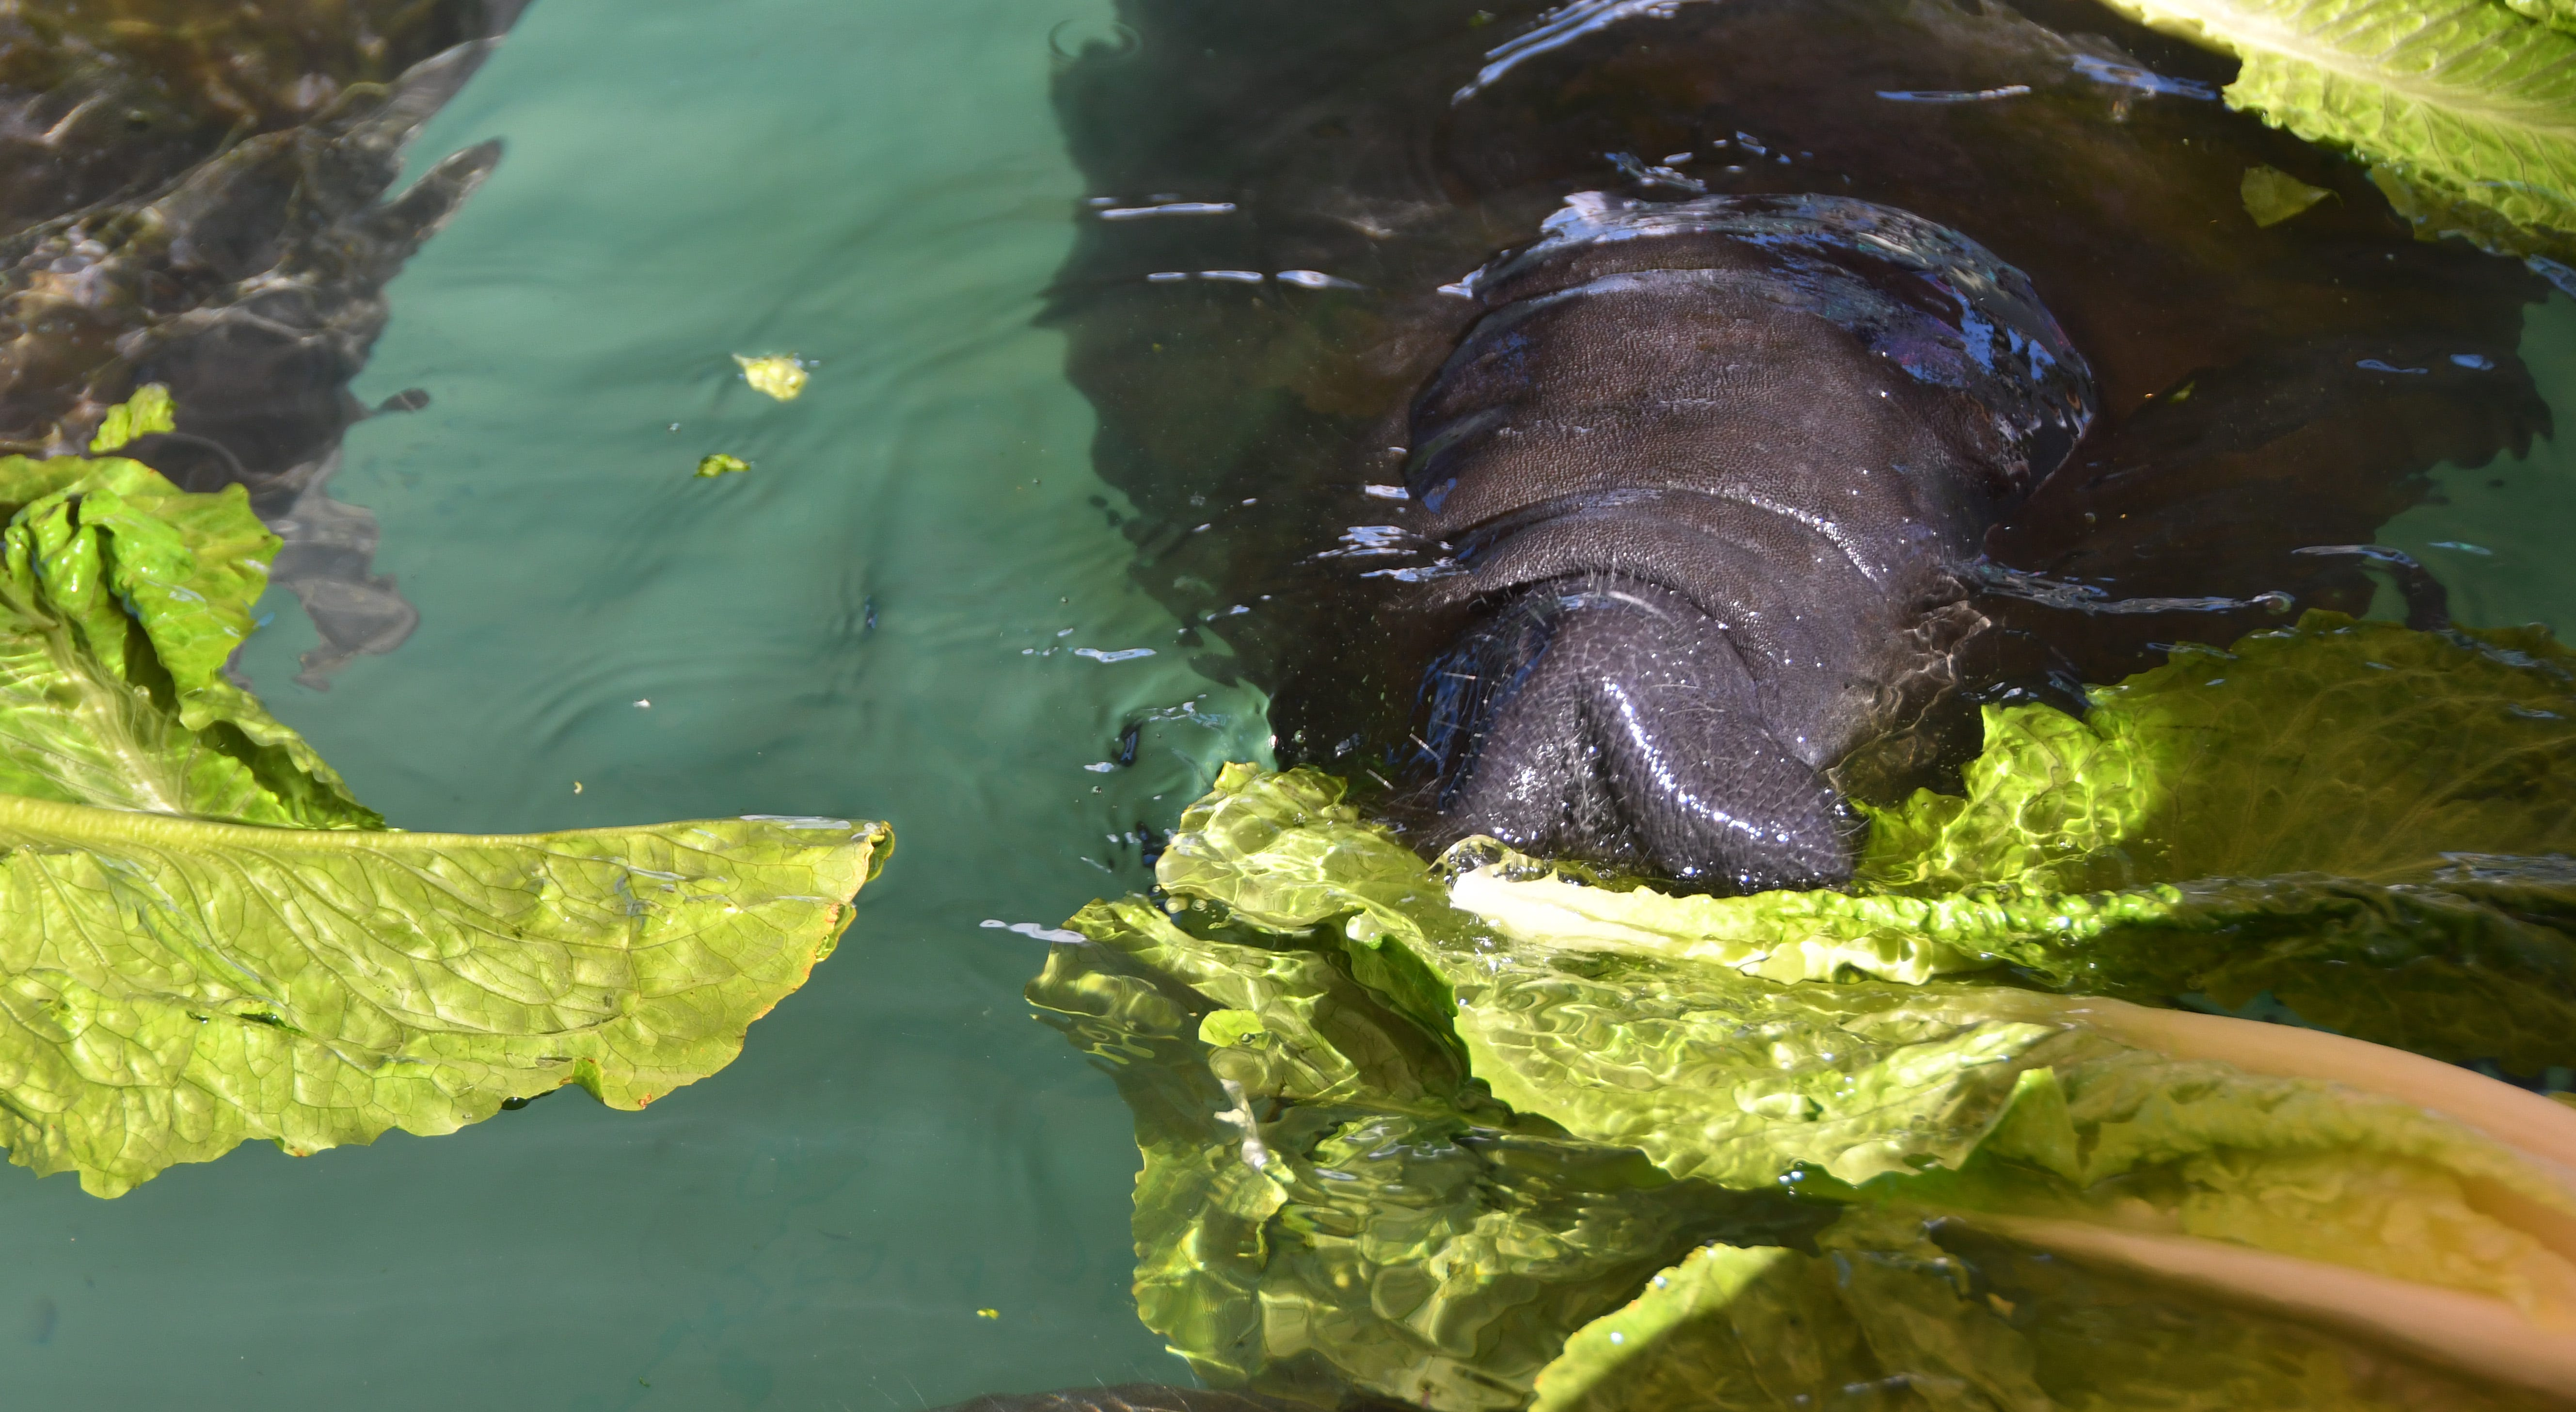 Recuperating juvenile manatees feast on romaine lettuce. SeaWorld goes through 275 cases (24 heads per case) of romaine lettuce a week.